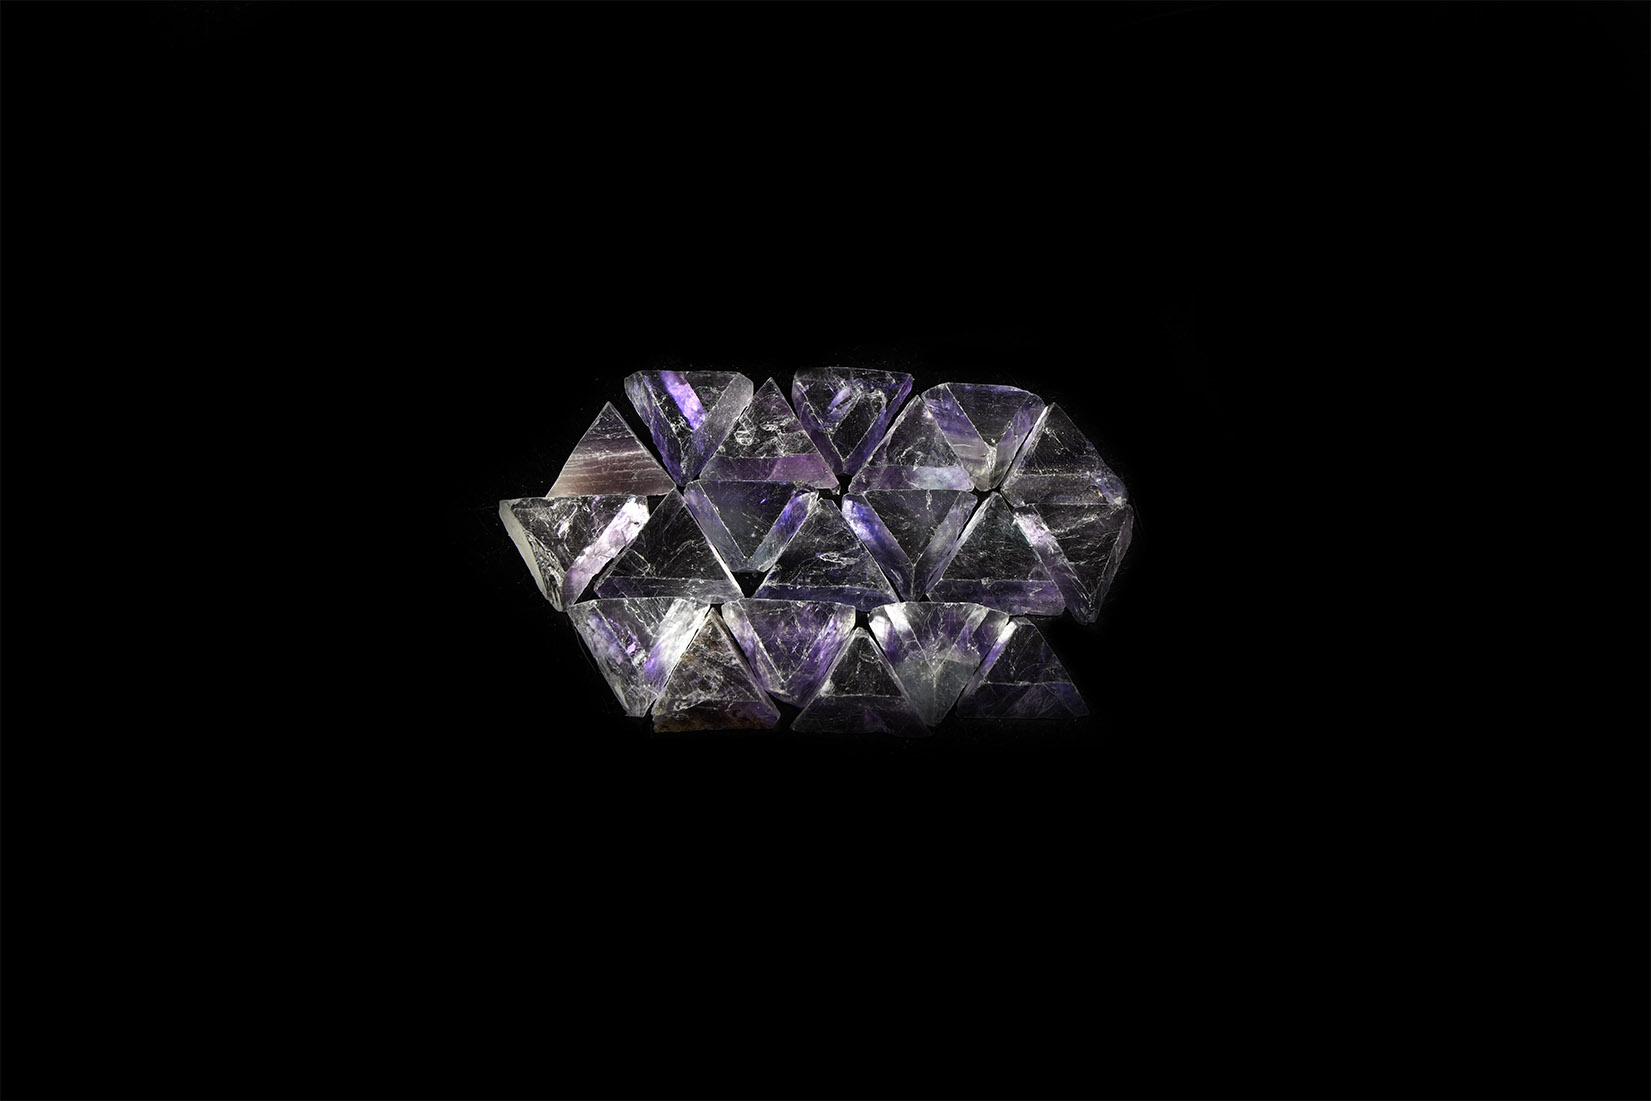 Natural History - China Fluorite Triangle Mineral Specimens